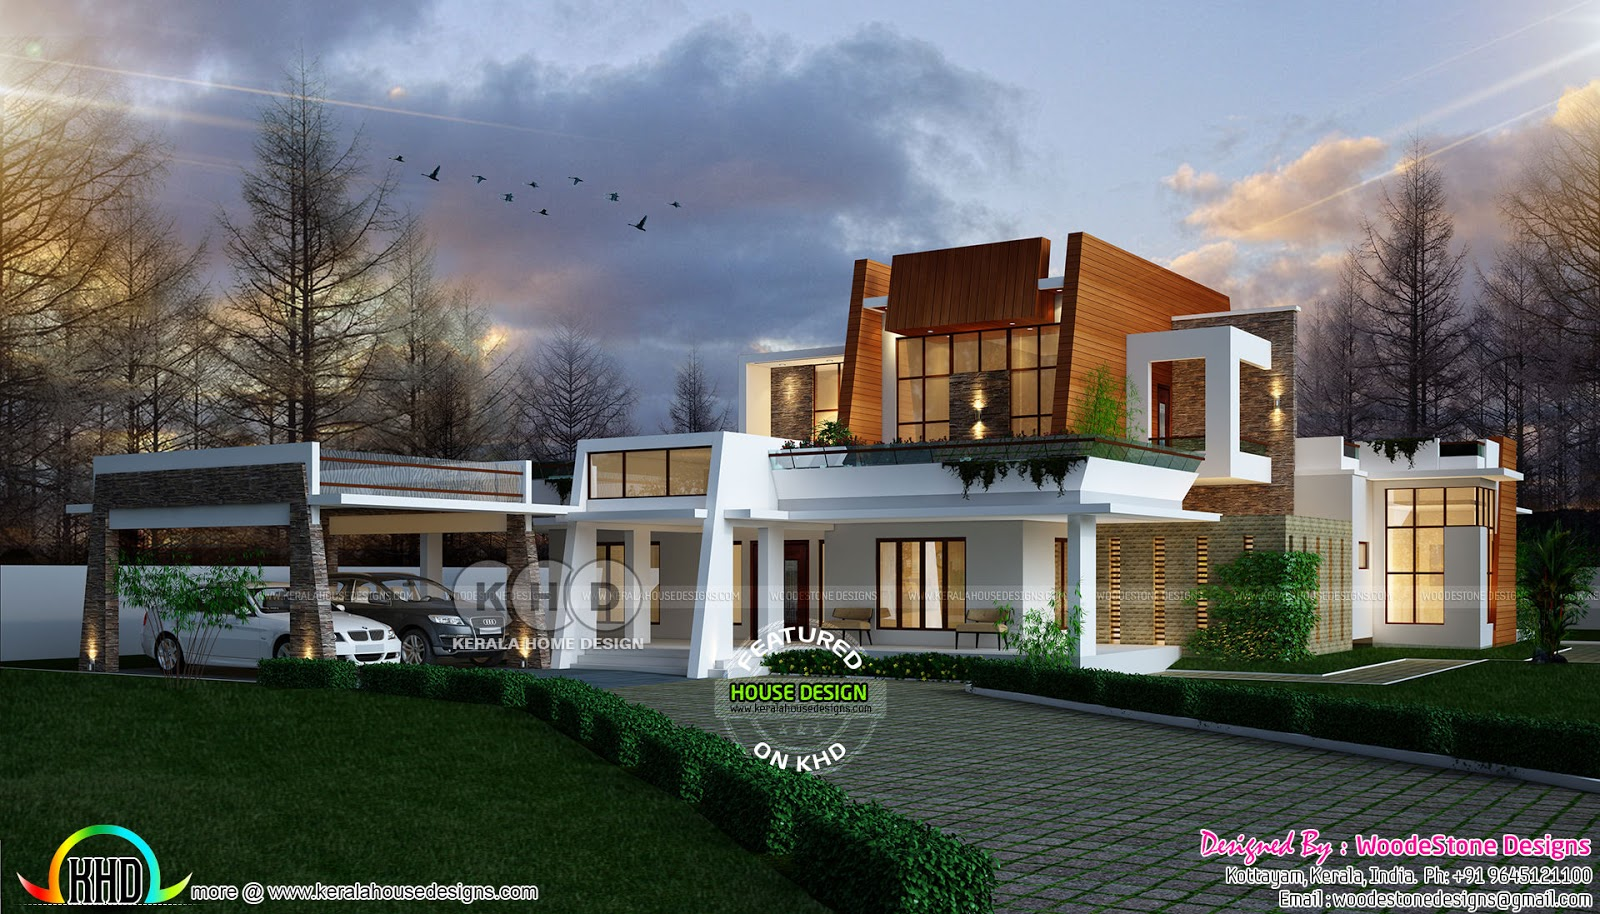 4 Bedroom Contemporary Home By WoodeStone Designs From Kottayam